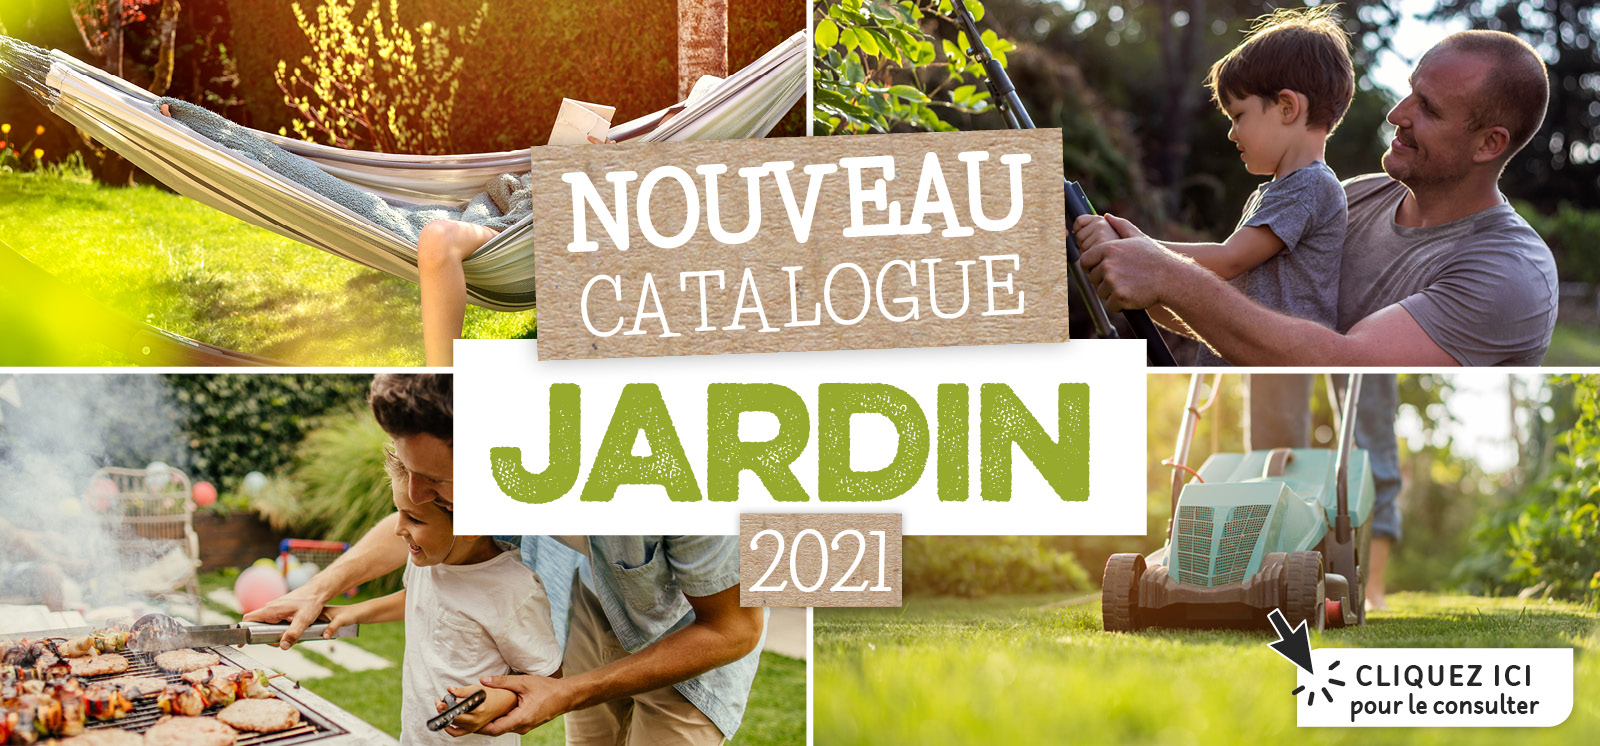 Catalogue Jardin 2021